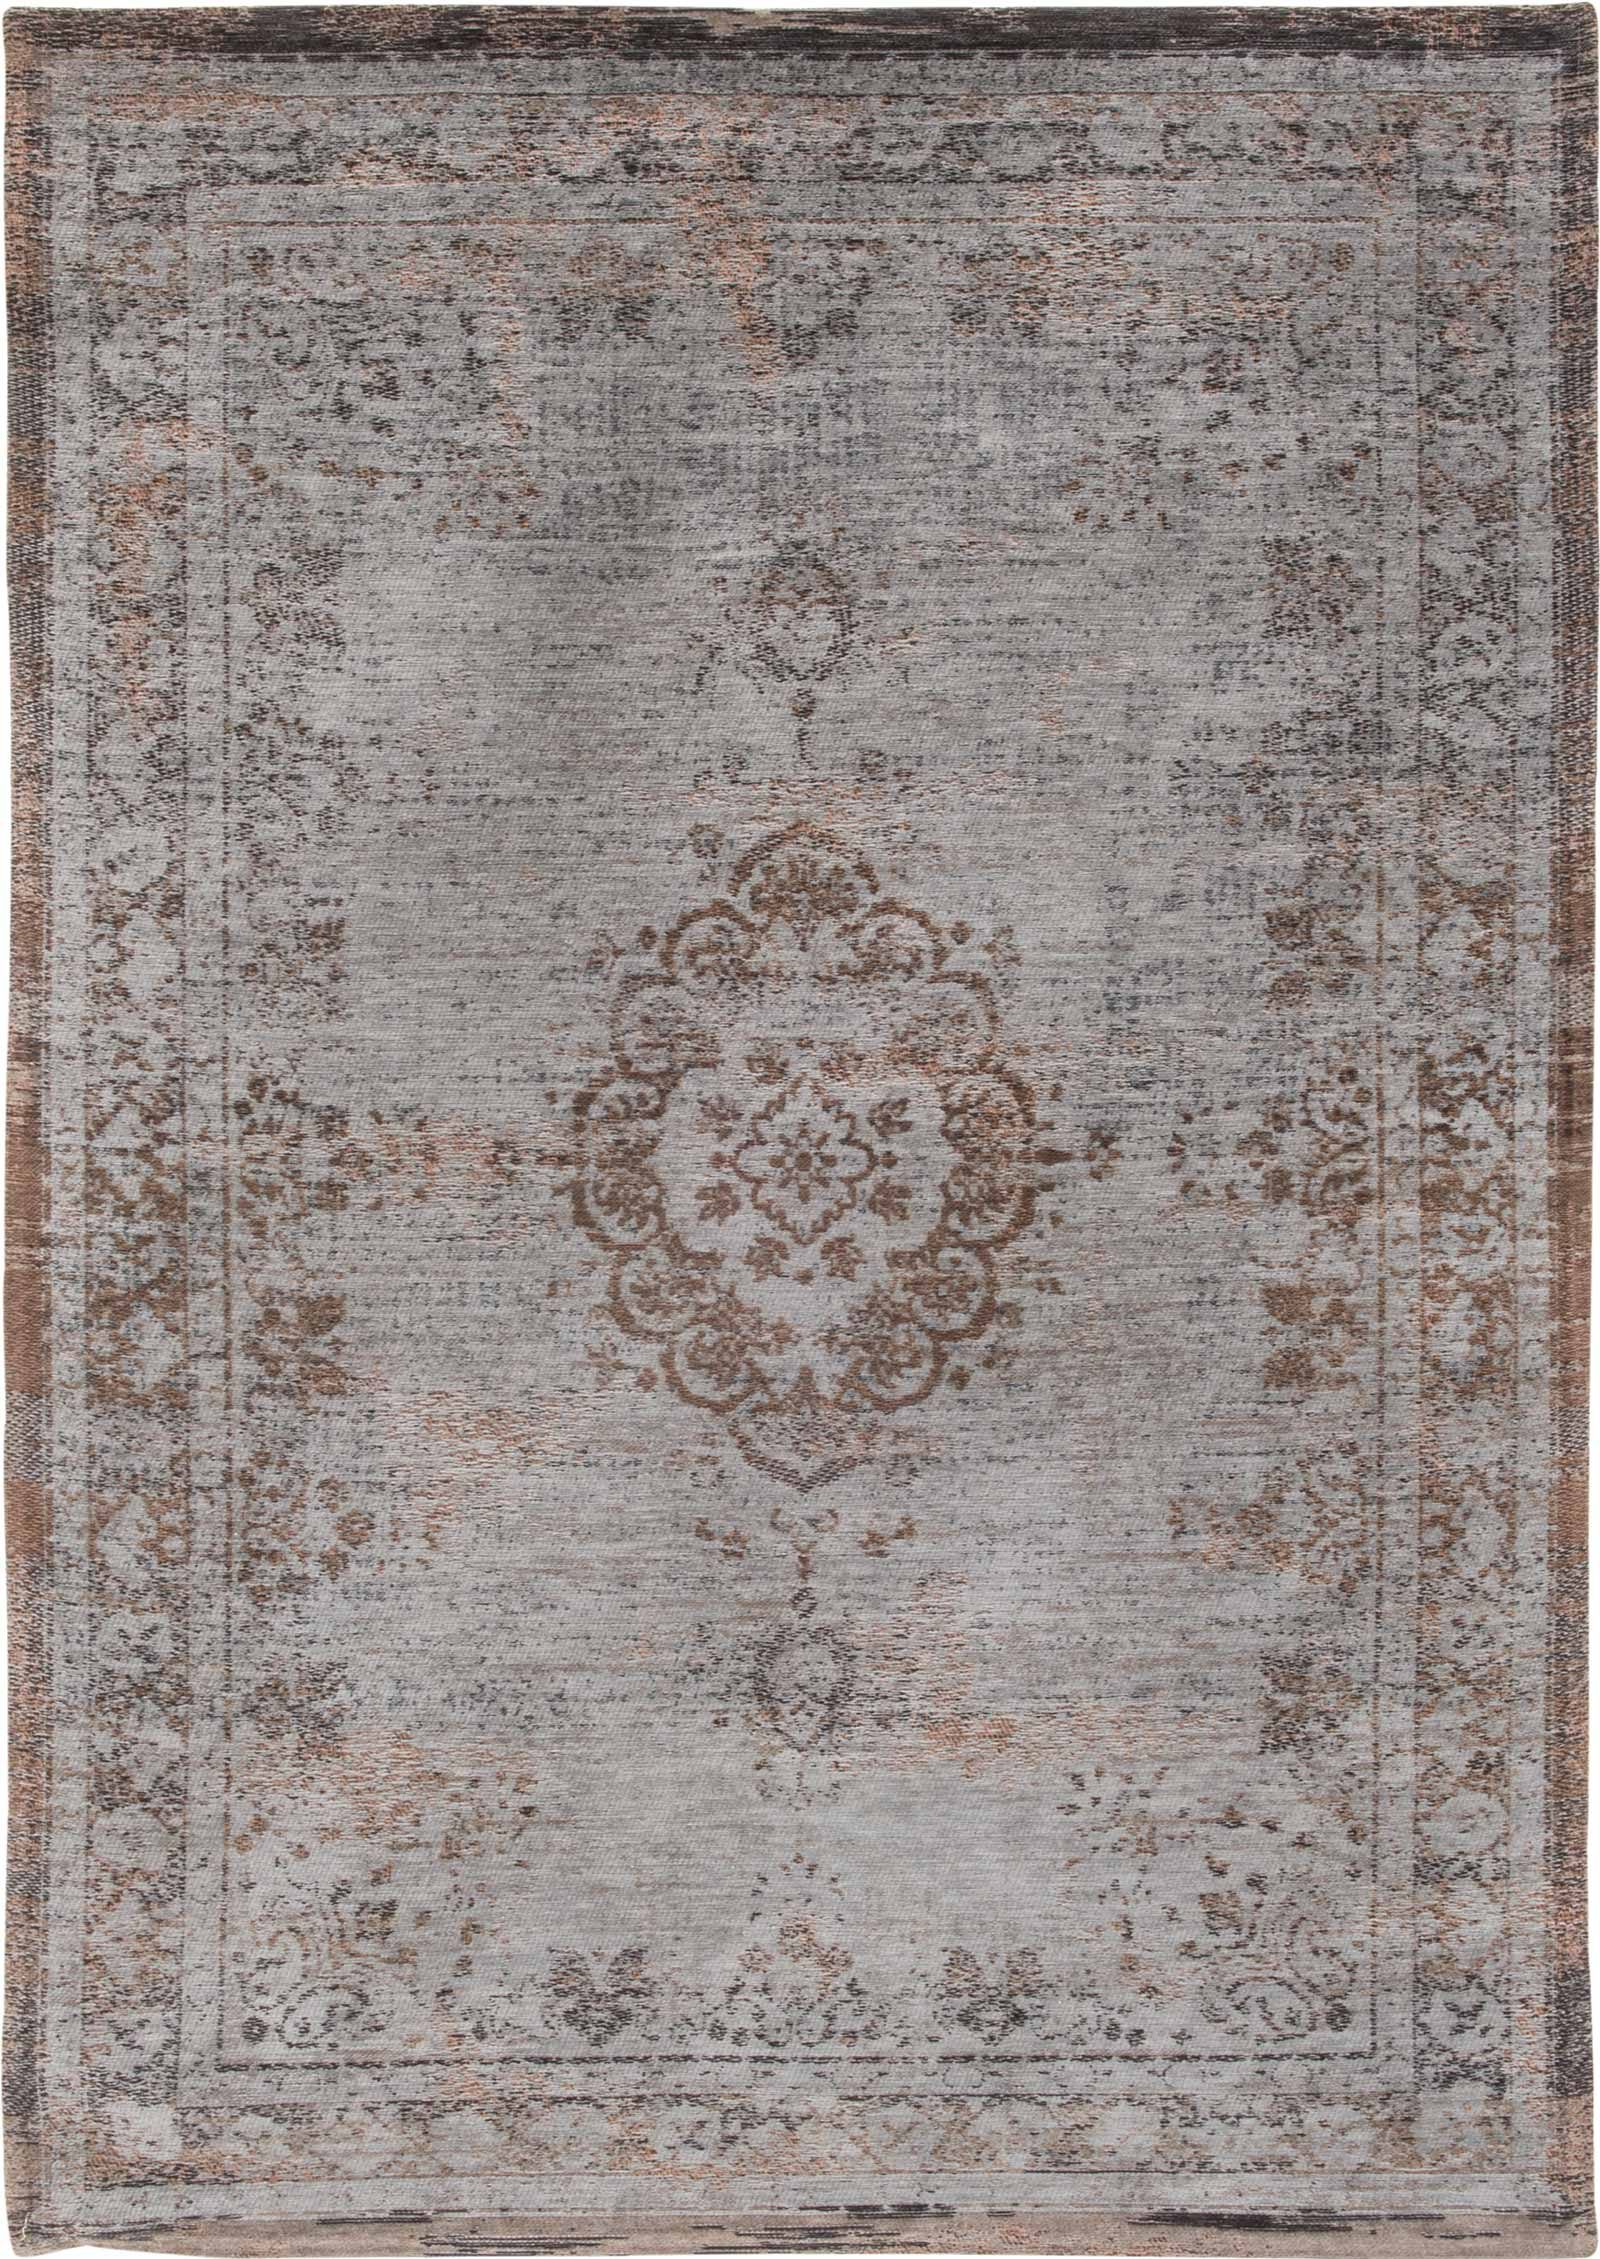 rugs Louis De Poortere LX8257 Fading World Medaillon Grey Ebony